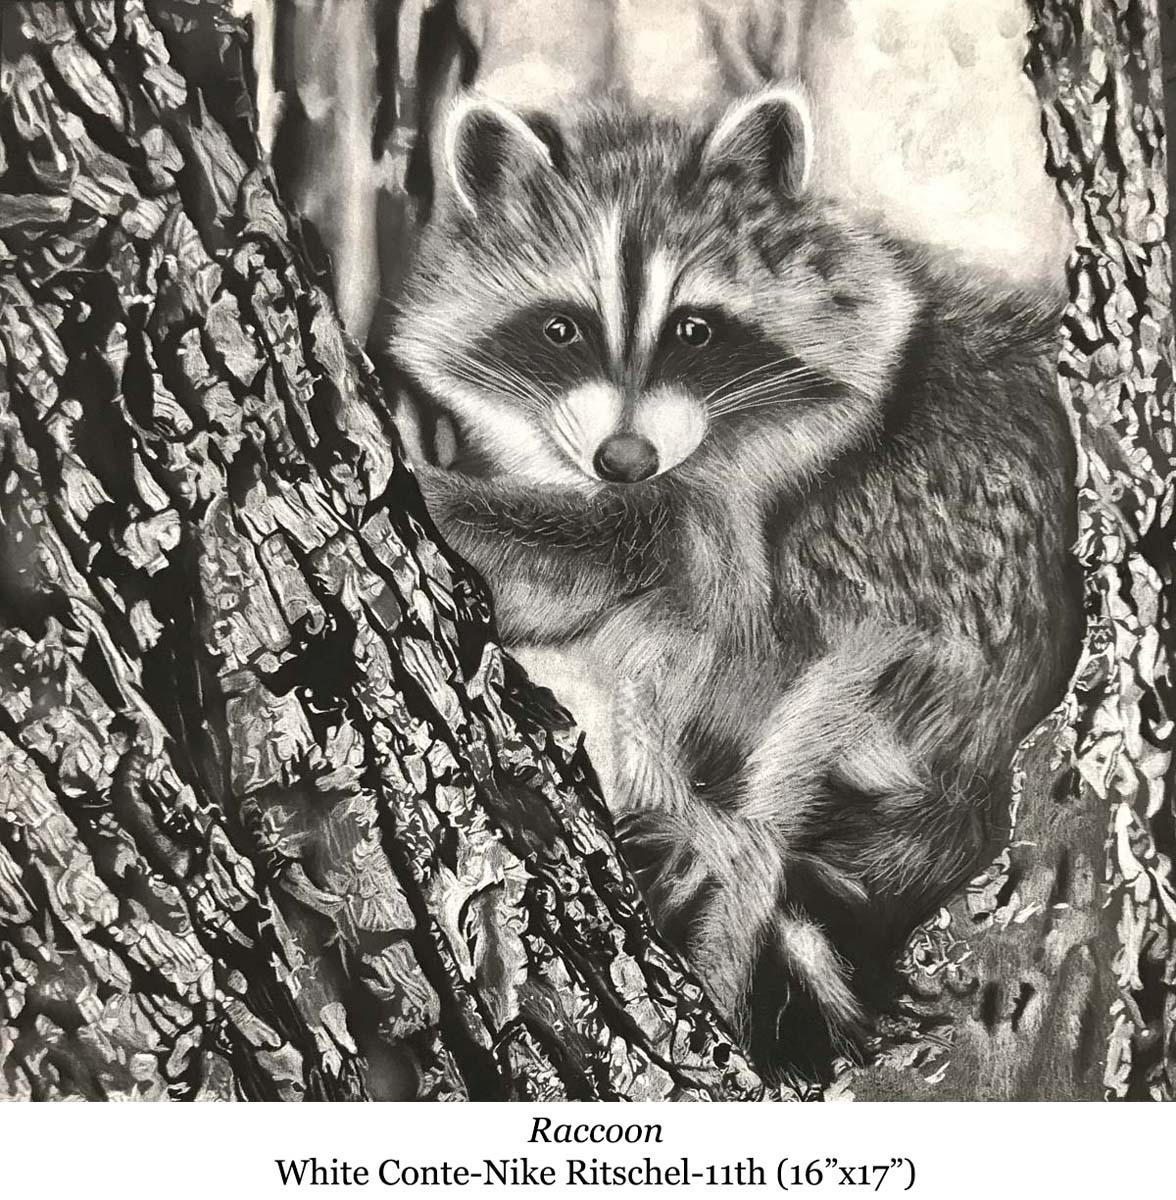 1587088185-raccoon-white_conte-nike_ritschel-11th__16_x17__